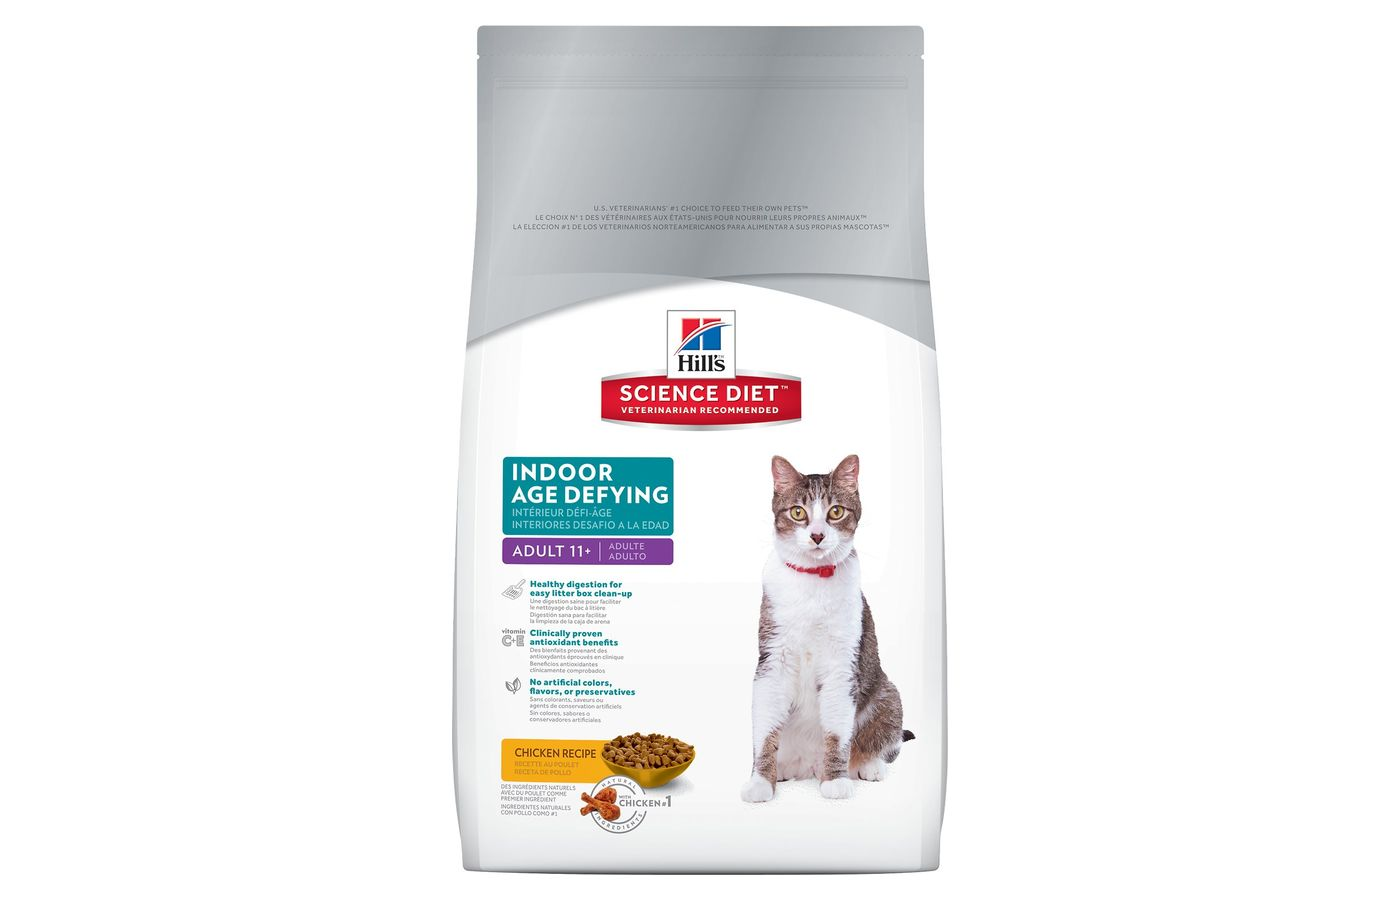 Hill's Science Diet Adult 11+ Indoor Age Defying Cat Food